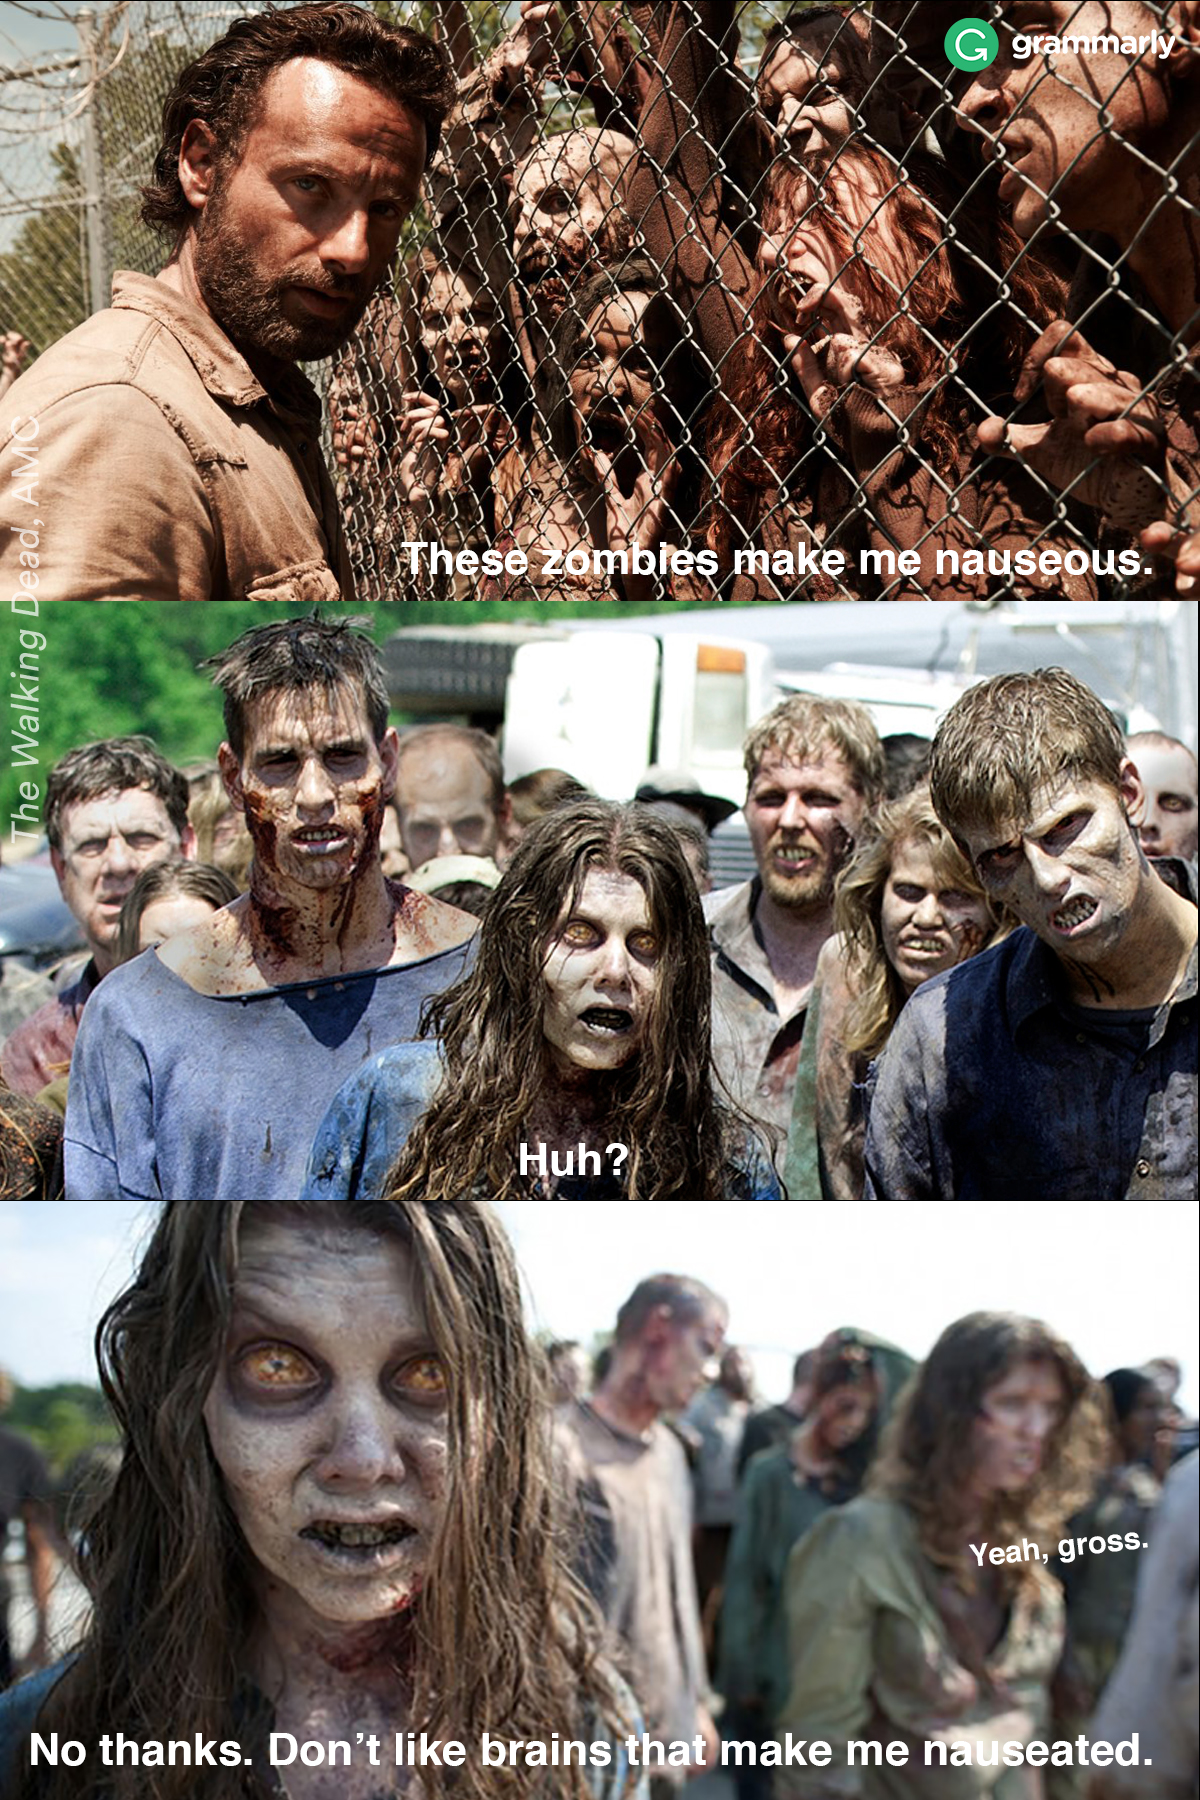 Nauseous and nauseated difference explained by zombies.